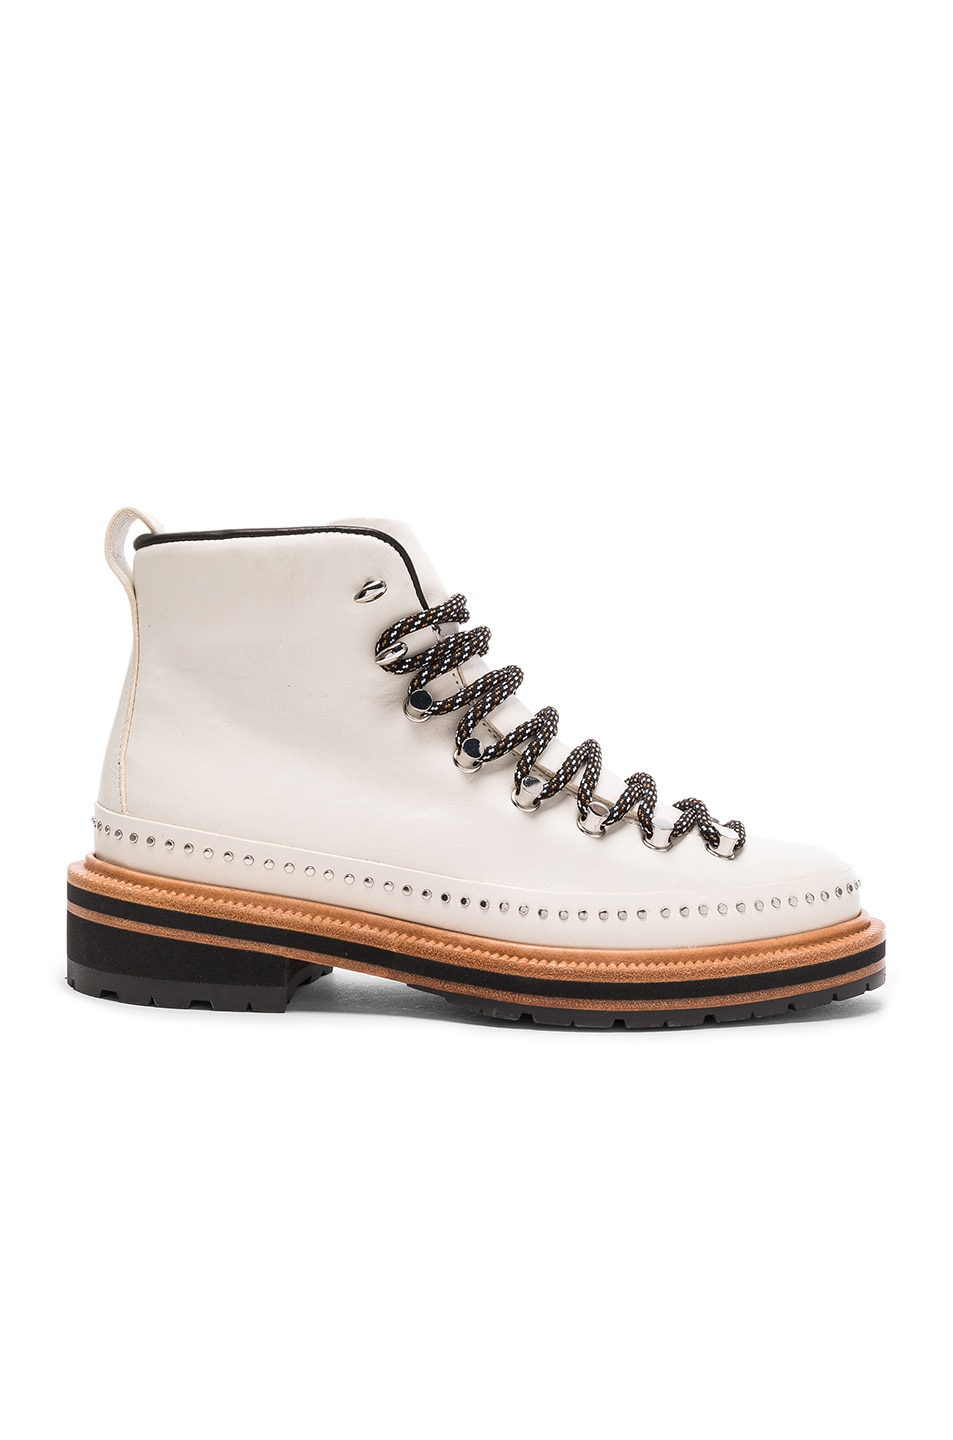 Image 1 of Rag & Bone Leather Compass Boots in Antique White